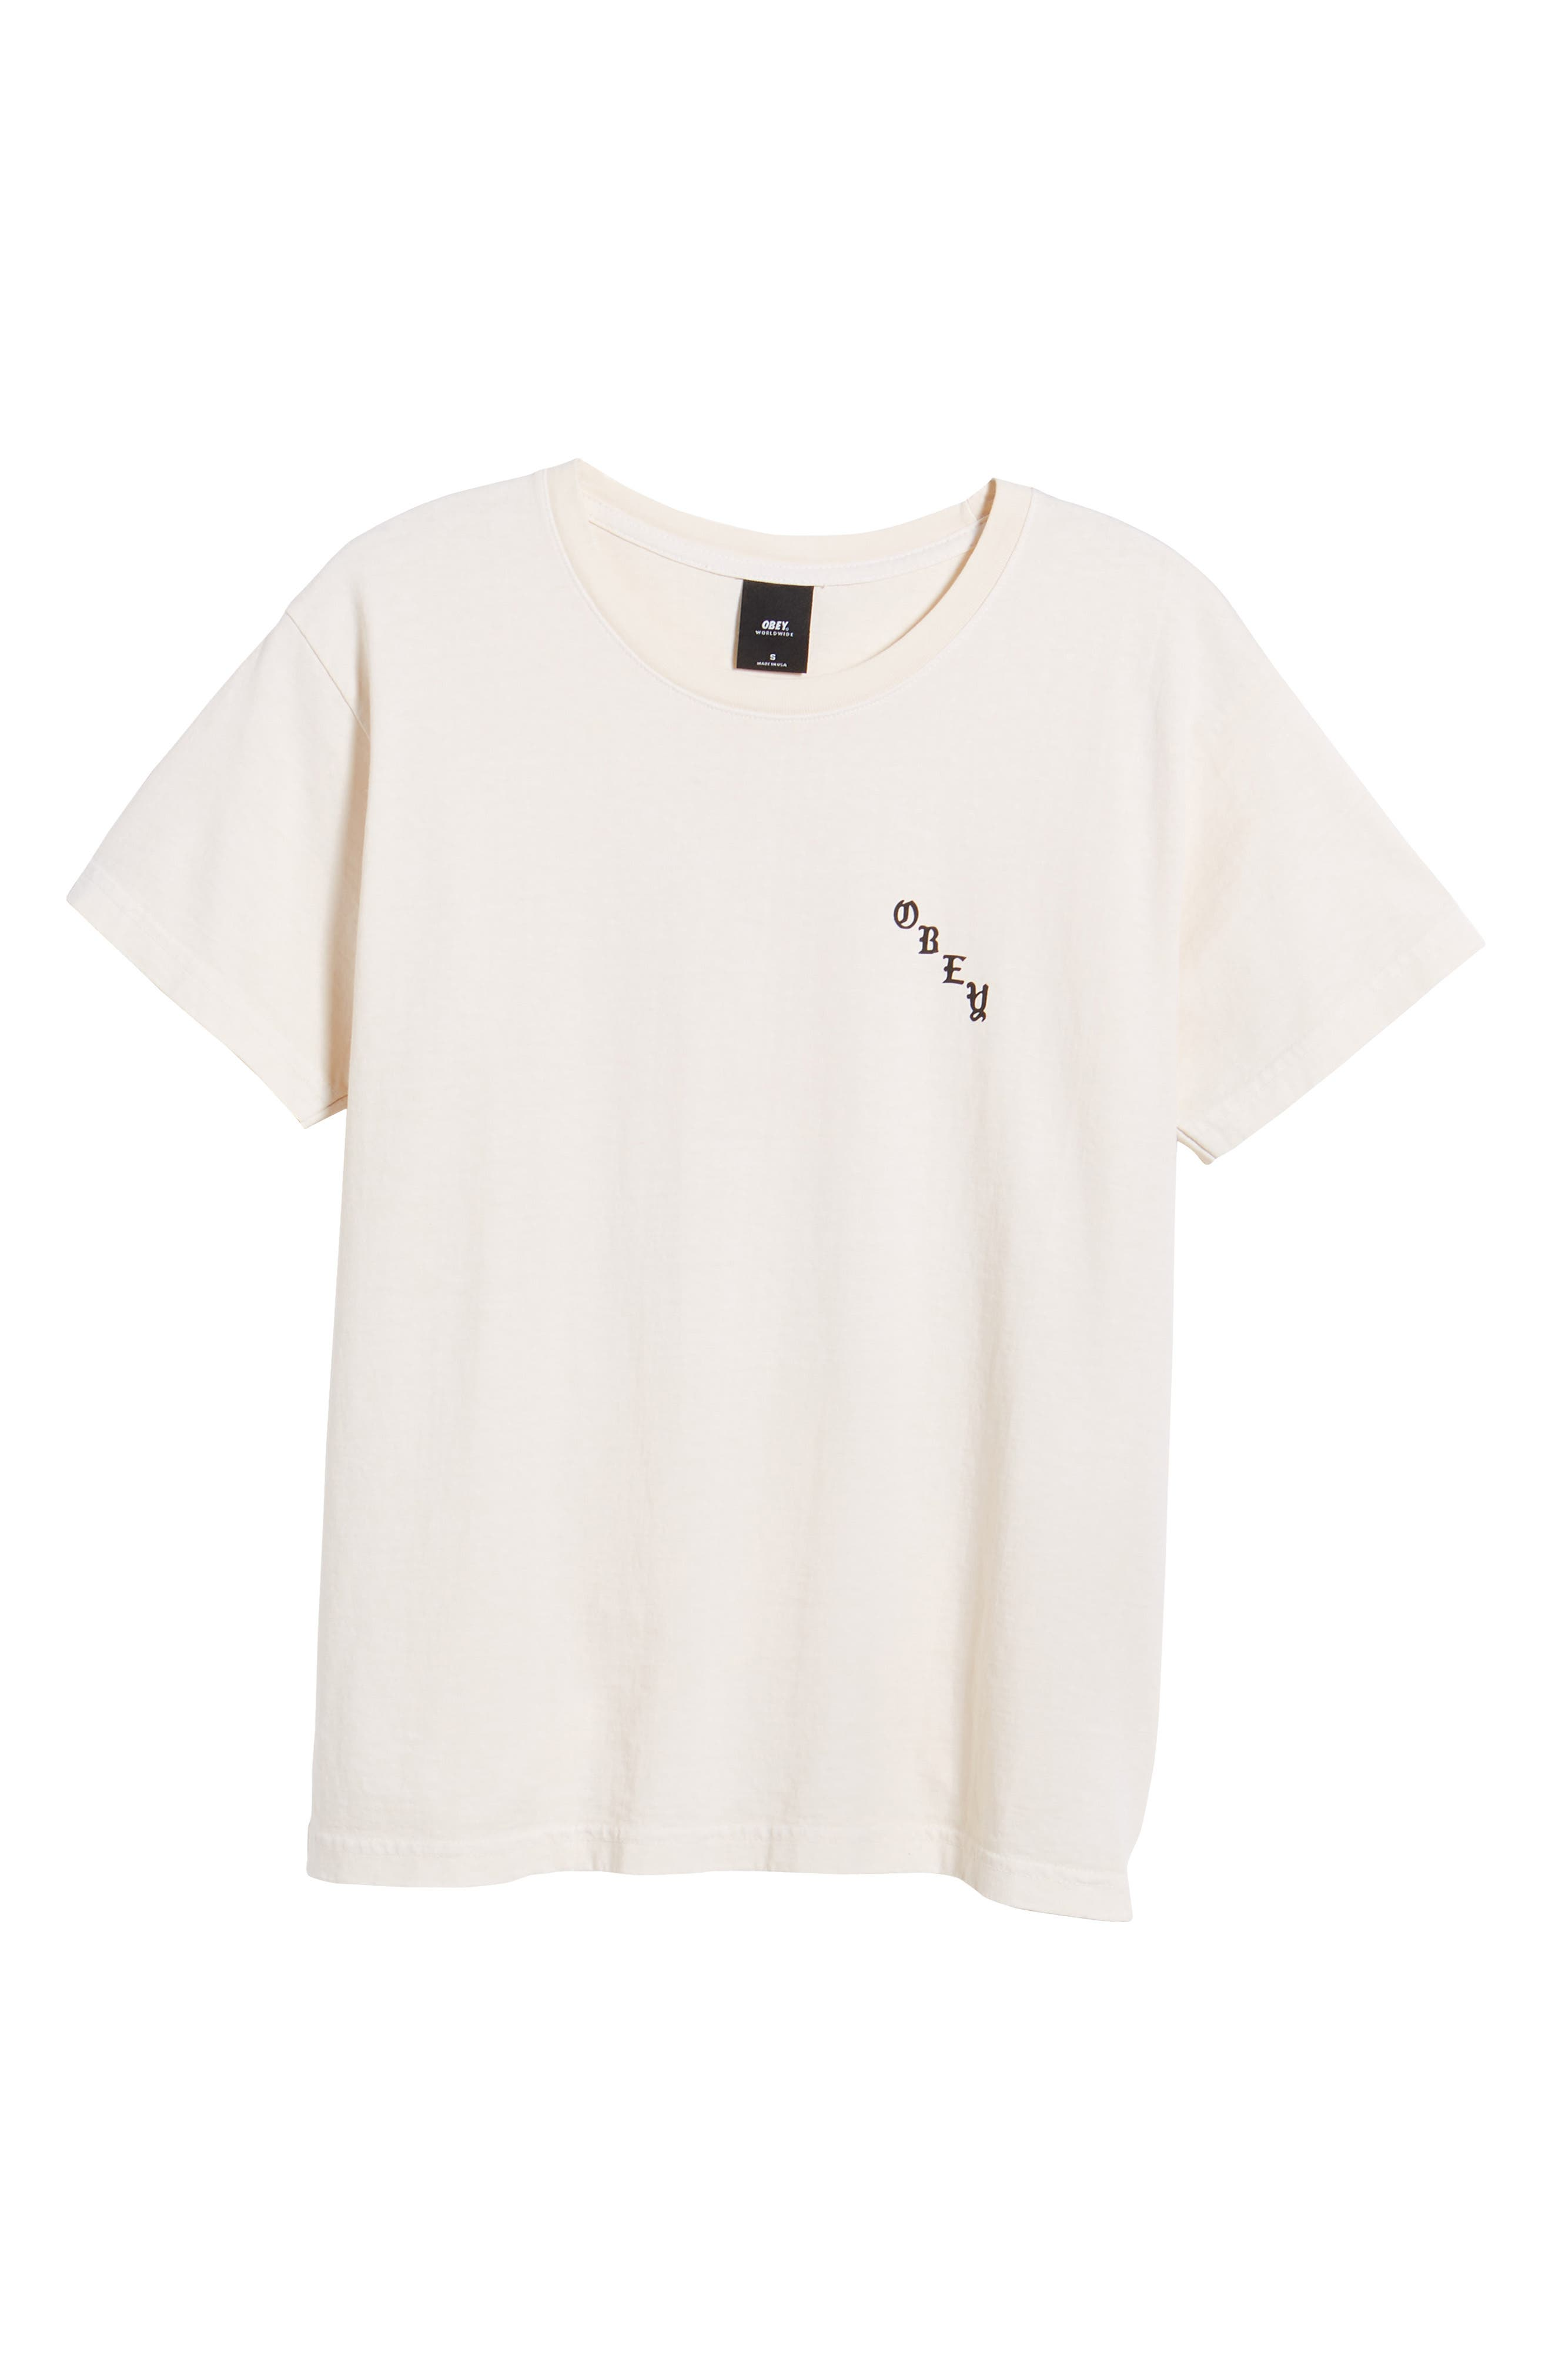 Slauson Rose Graphic Tee,                             Alternate thumbnail 6, color,                             Creme